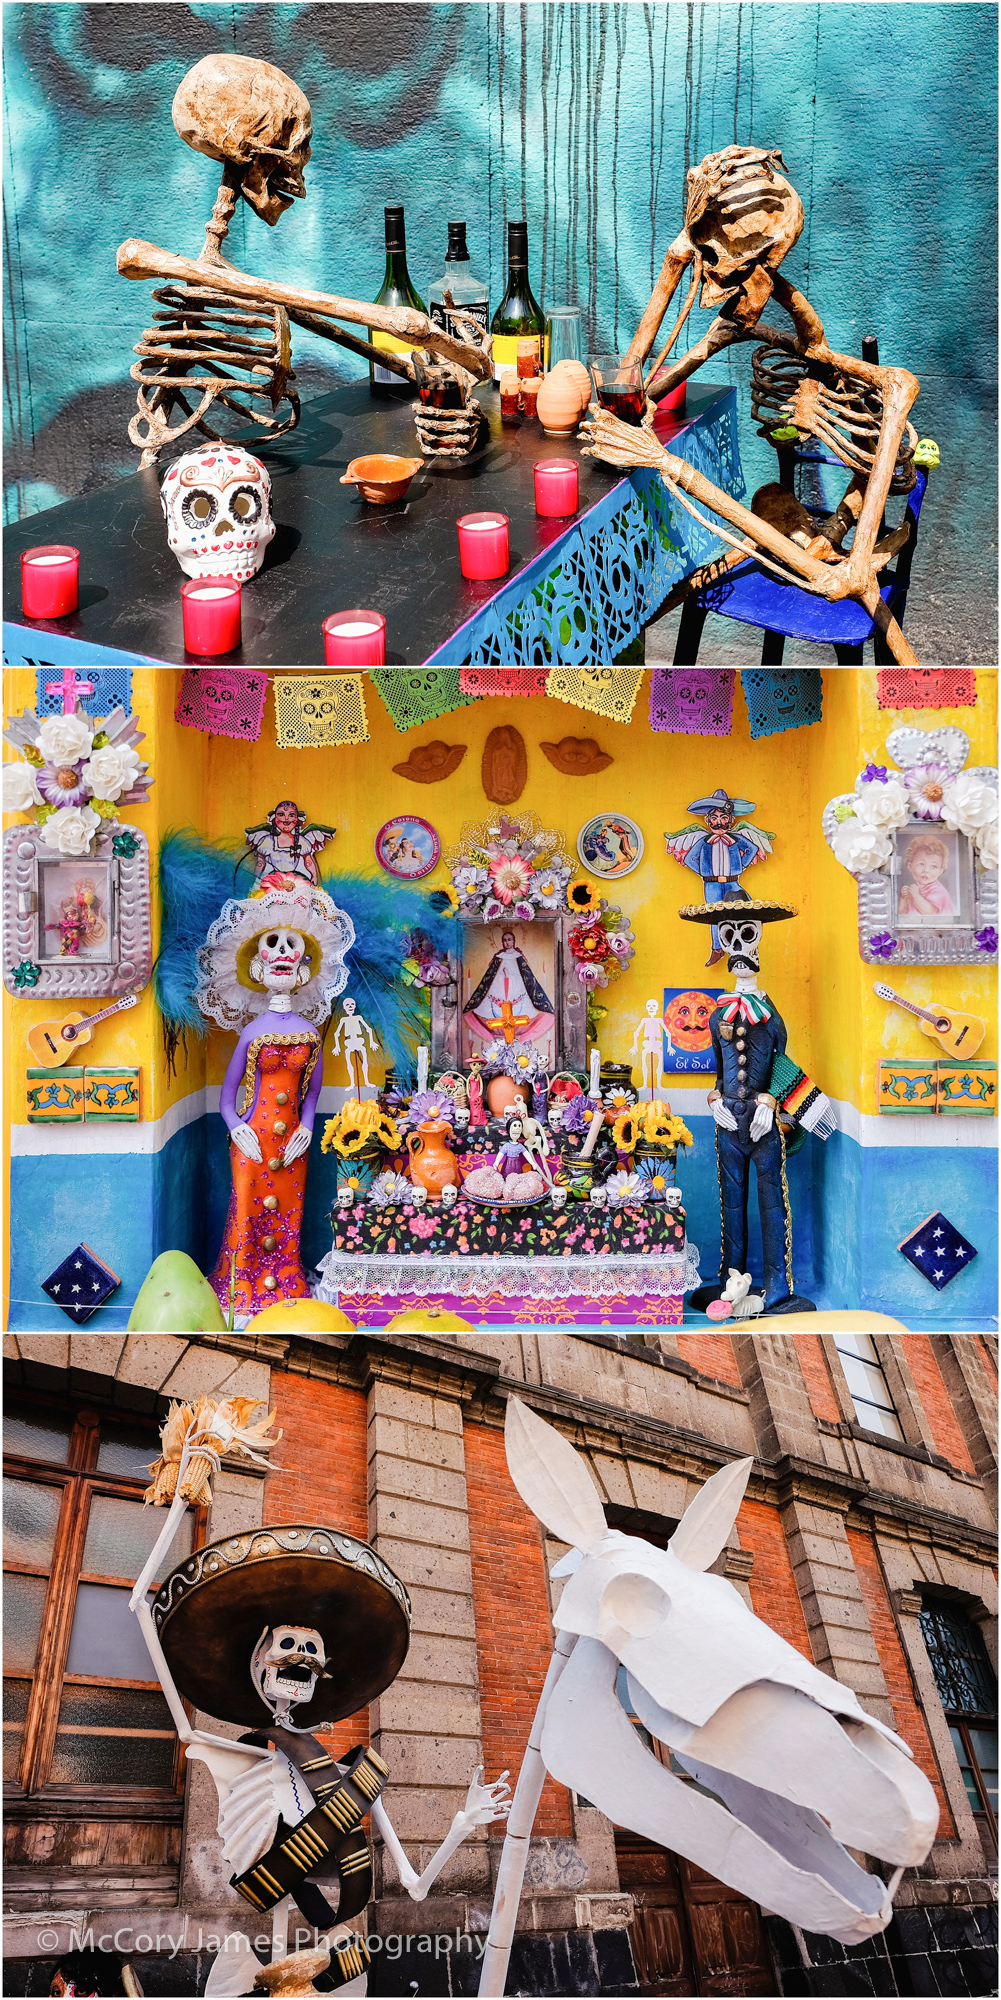 mexico muertos dia los culture mixquic during san experiencing andres mccory celebrations recommend highly sense unique would elevatephotography denver